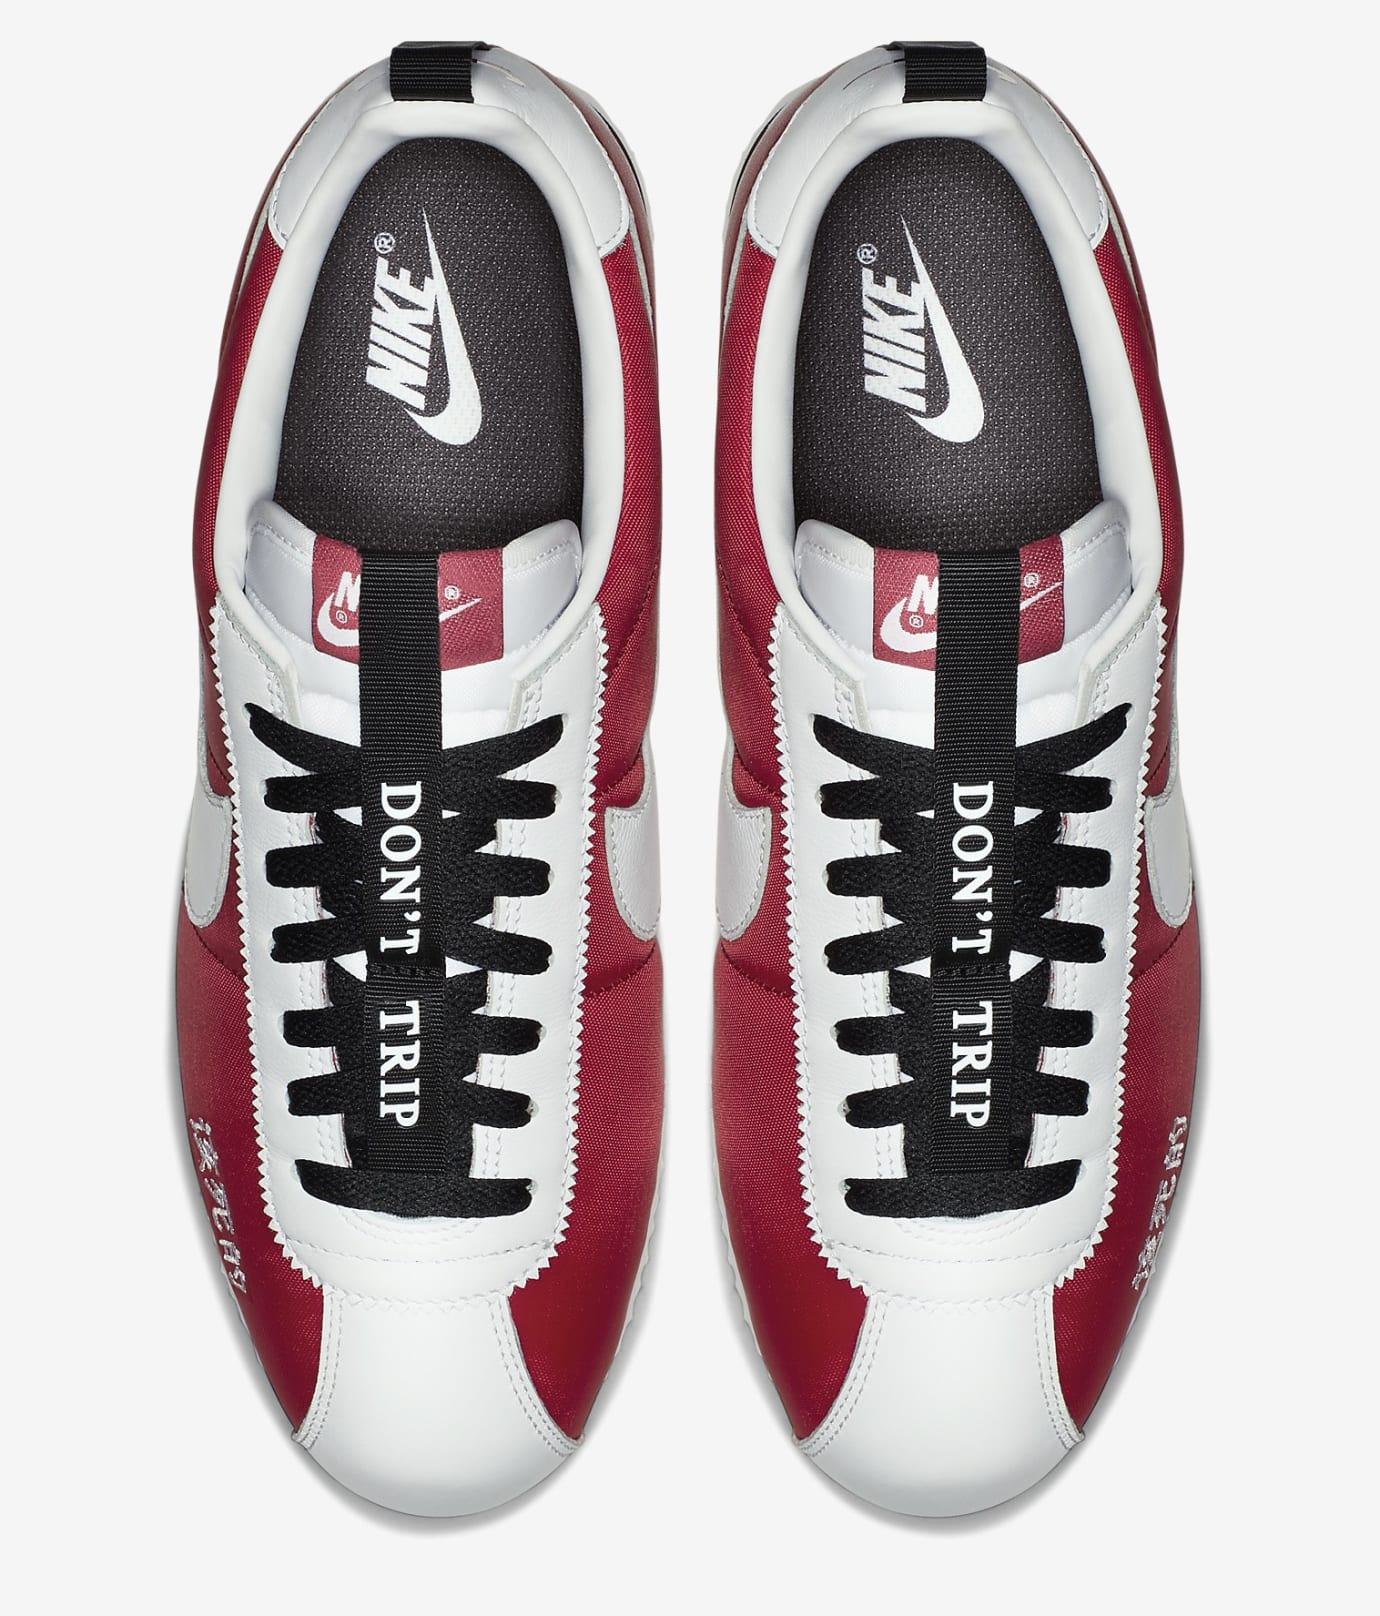 424800582082 The Nike Cortez  Kung Fu Kenny  Release Date Feb. 2018